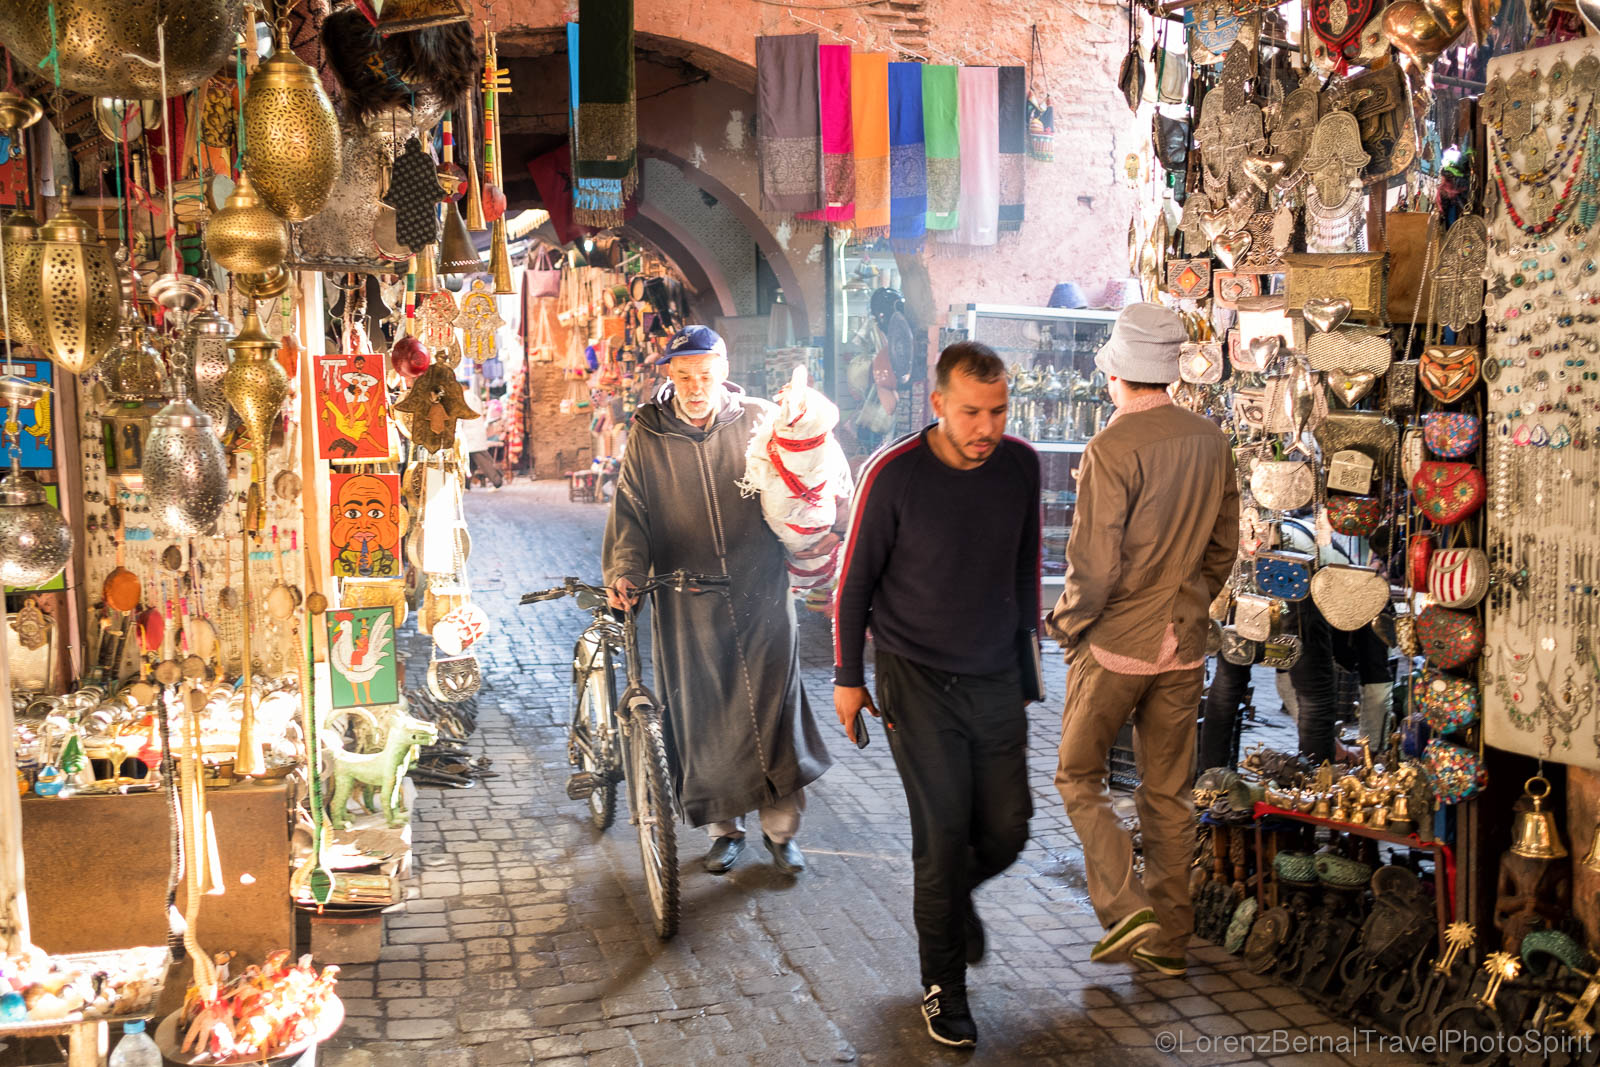 Street life in a Marrakech souk.